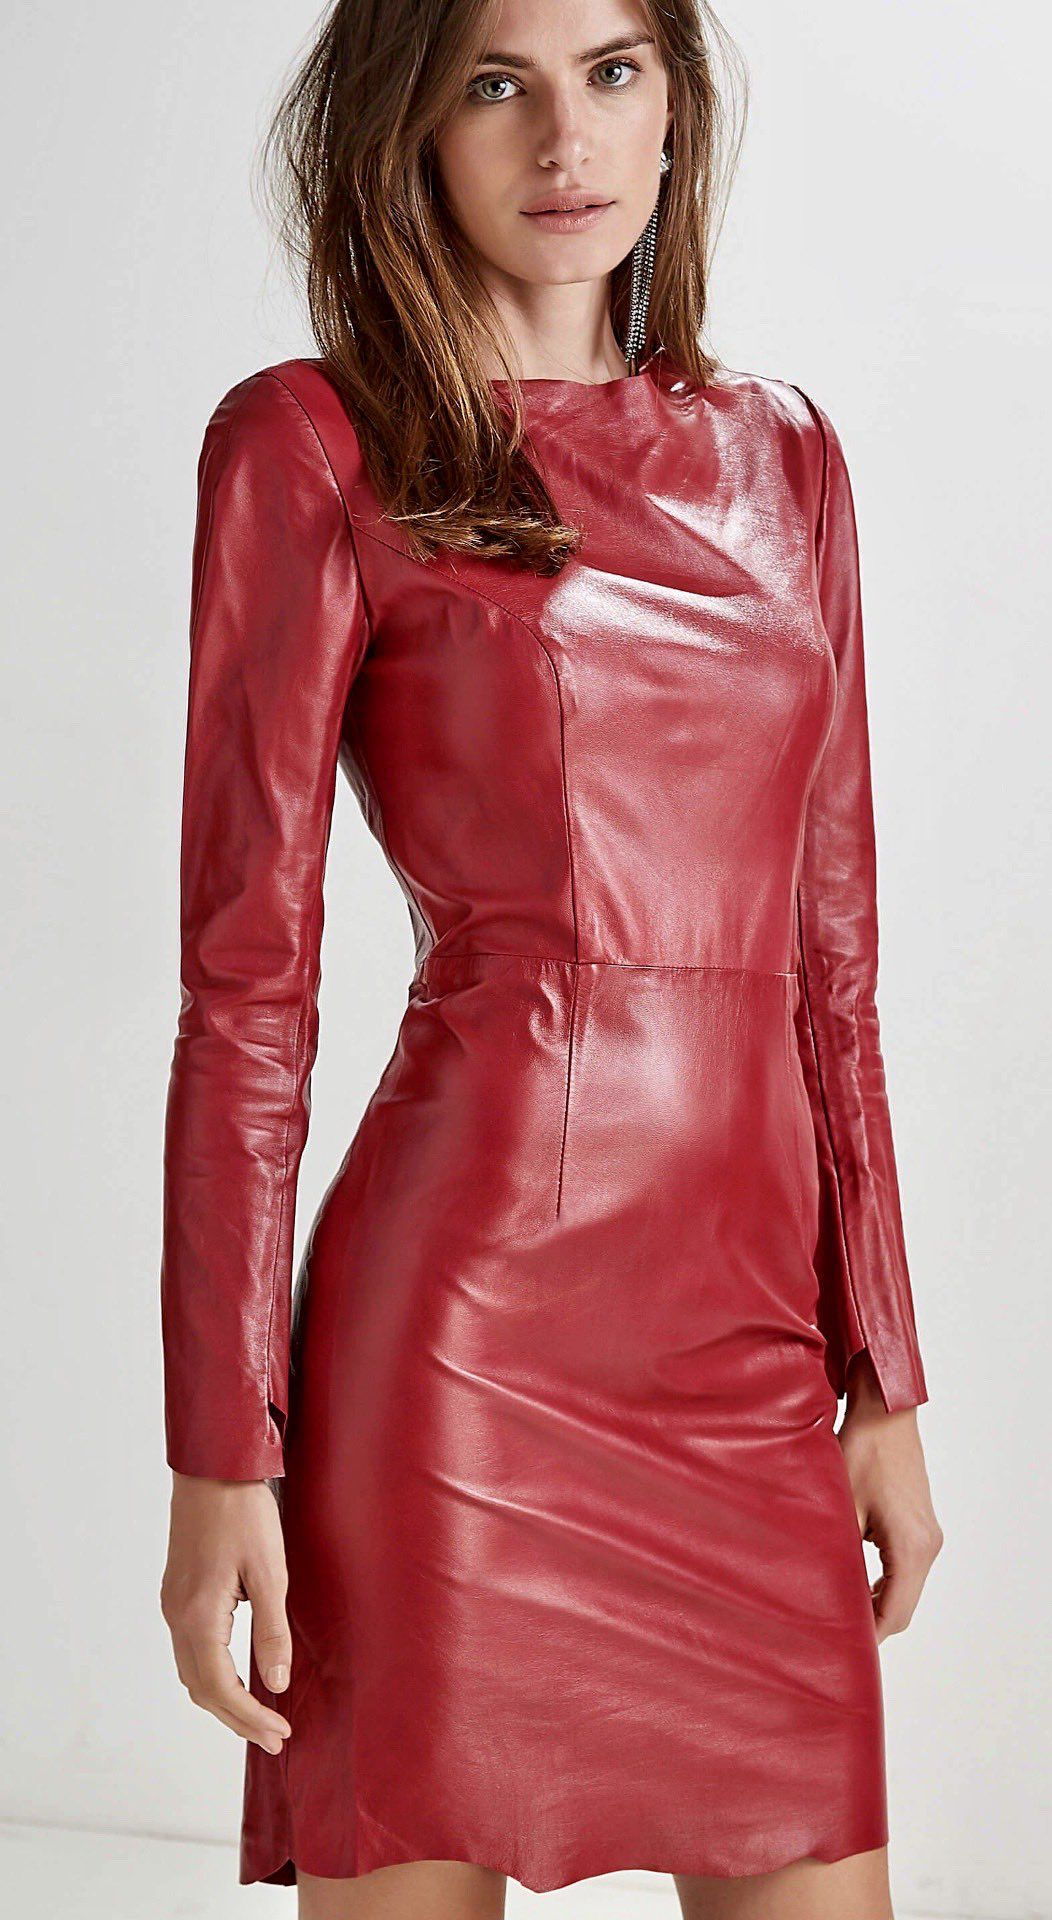 How To Wear Red Leather Dress